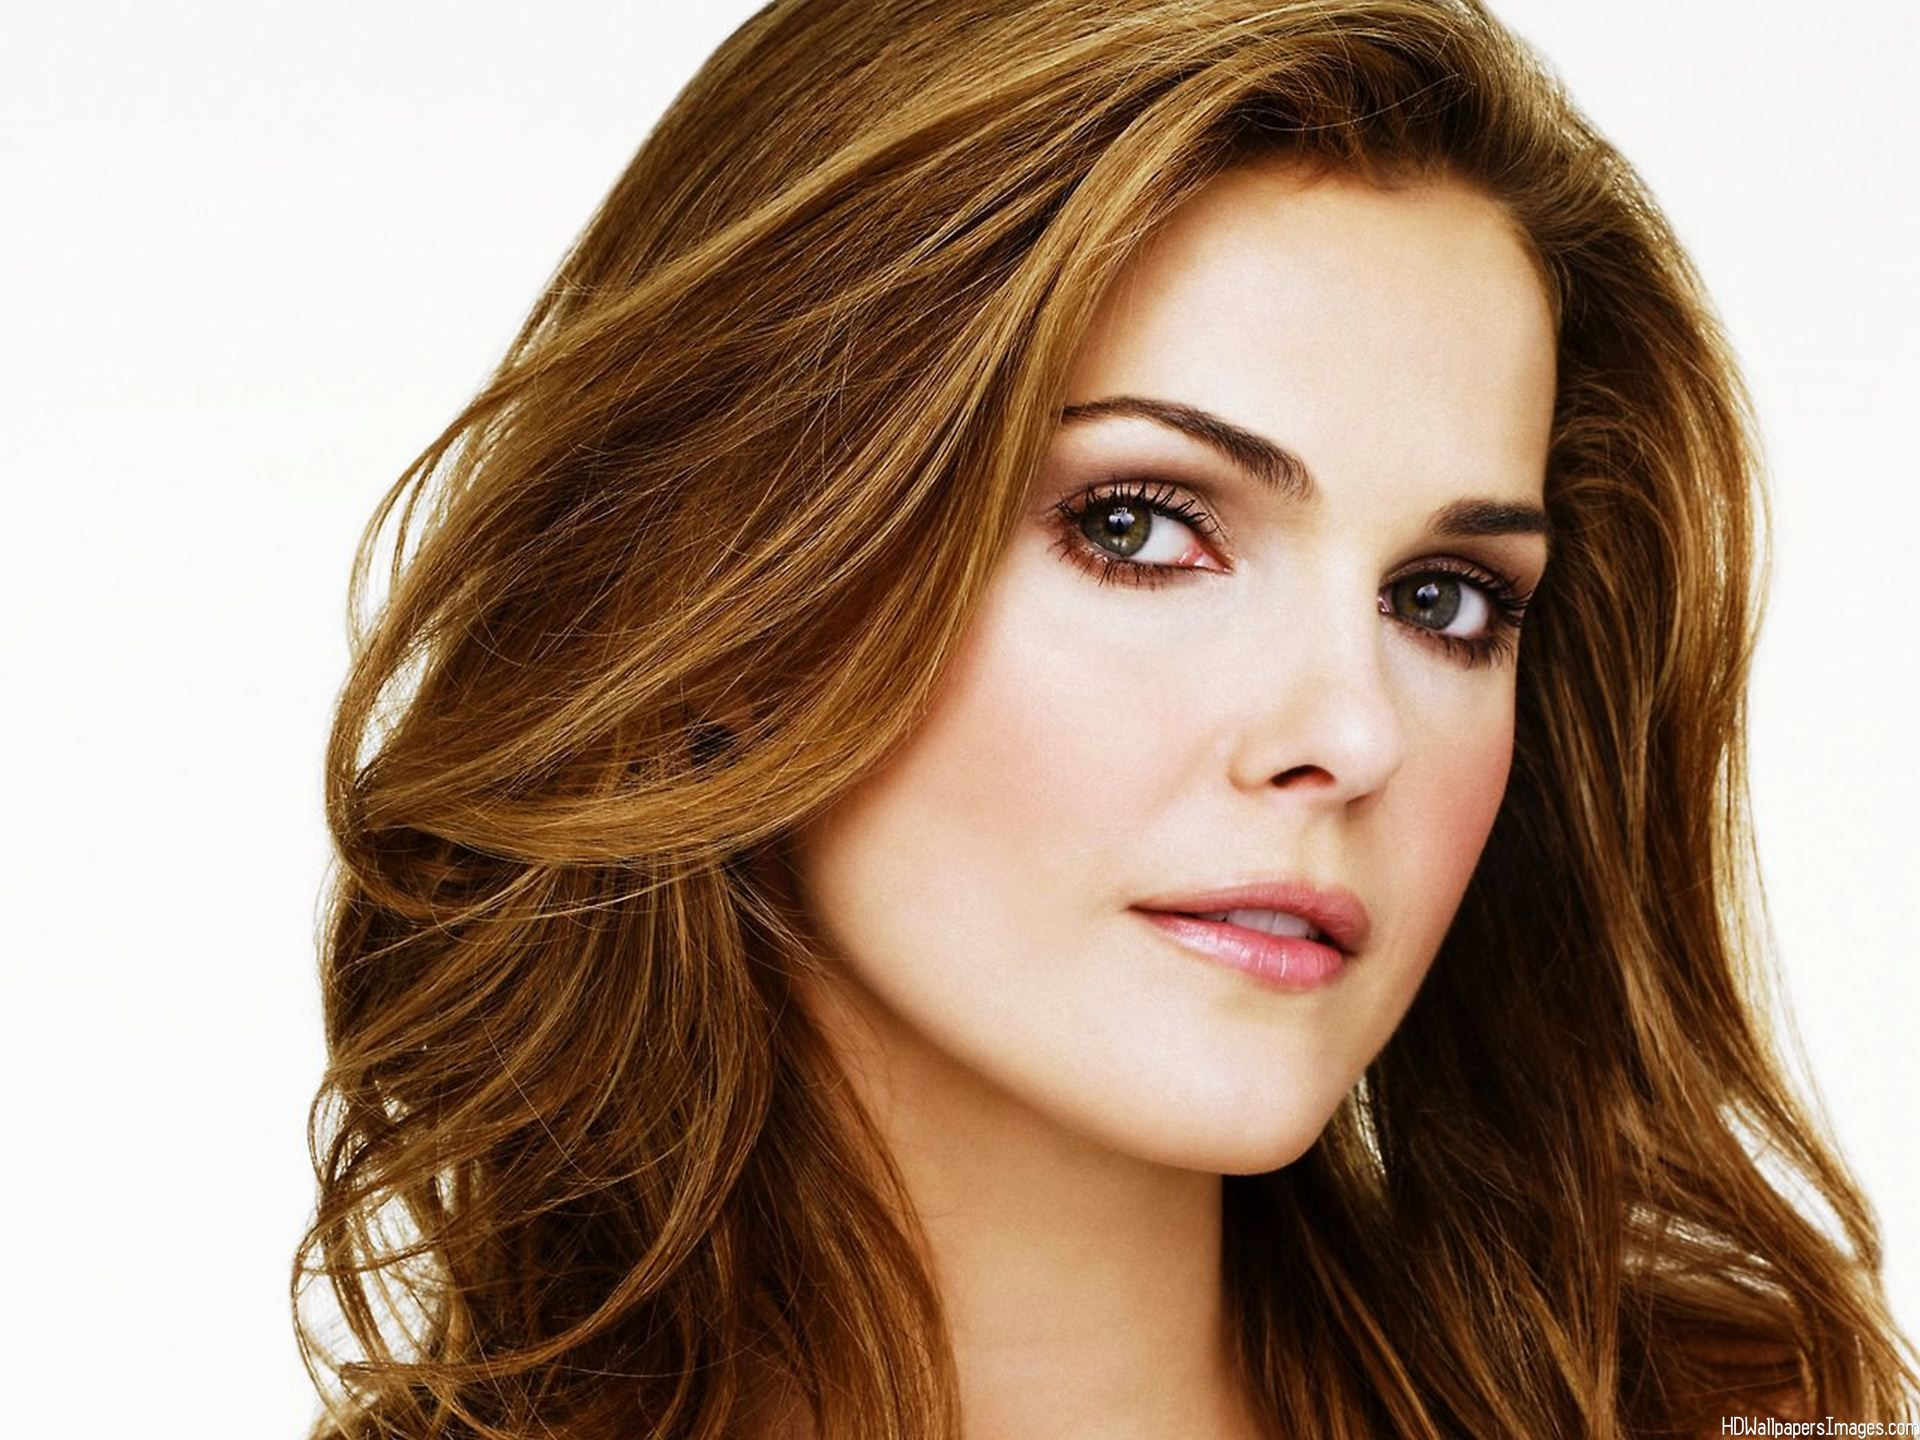 Christian Wallpapers Hd Free Download Keri Russell Wallpapers High Resolution And Quality Download